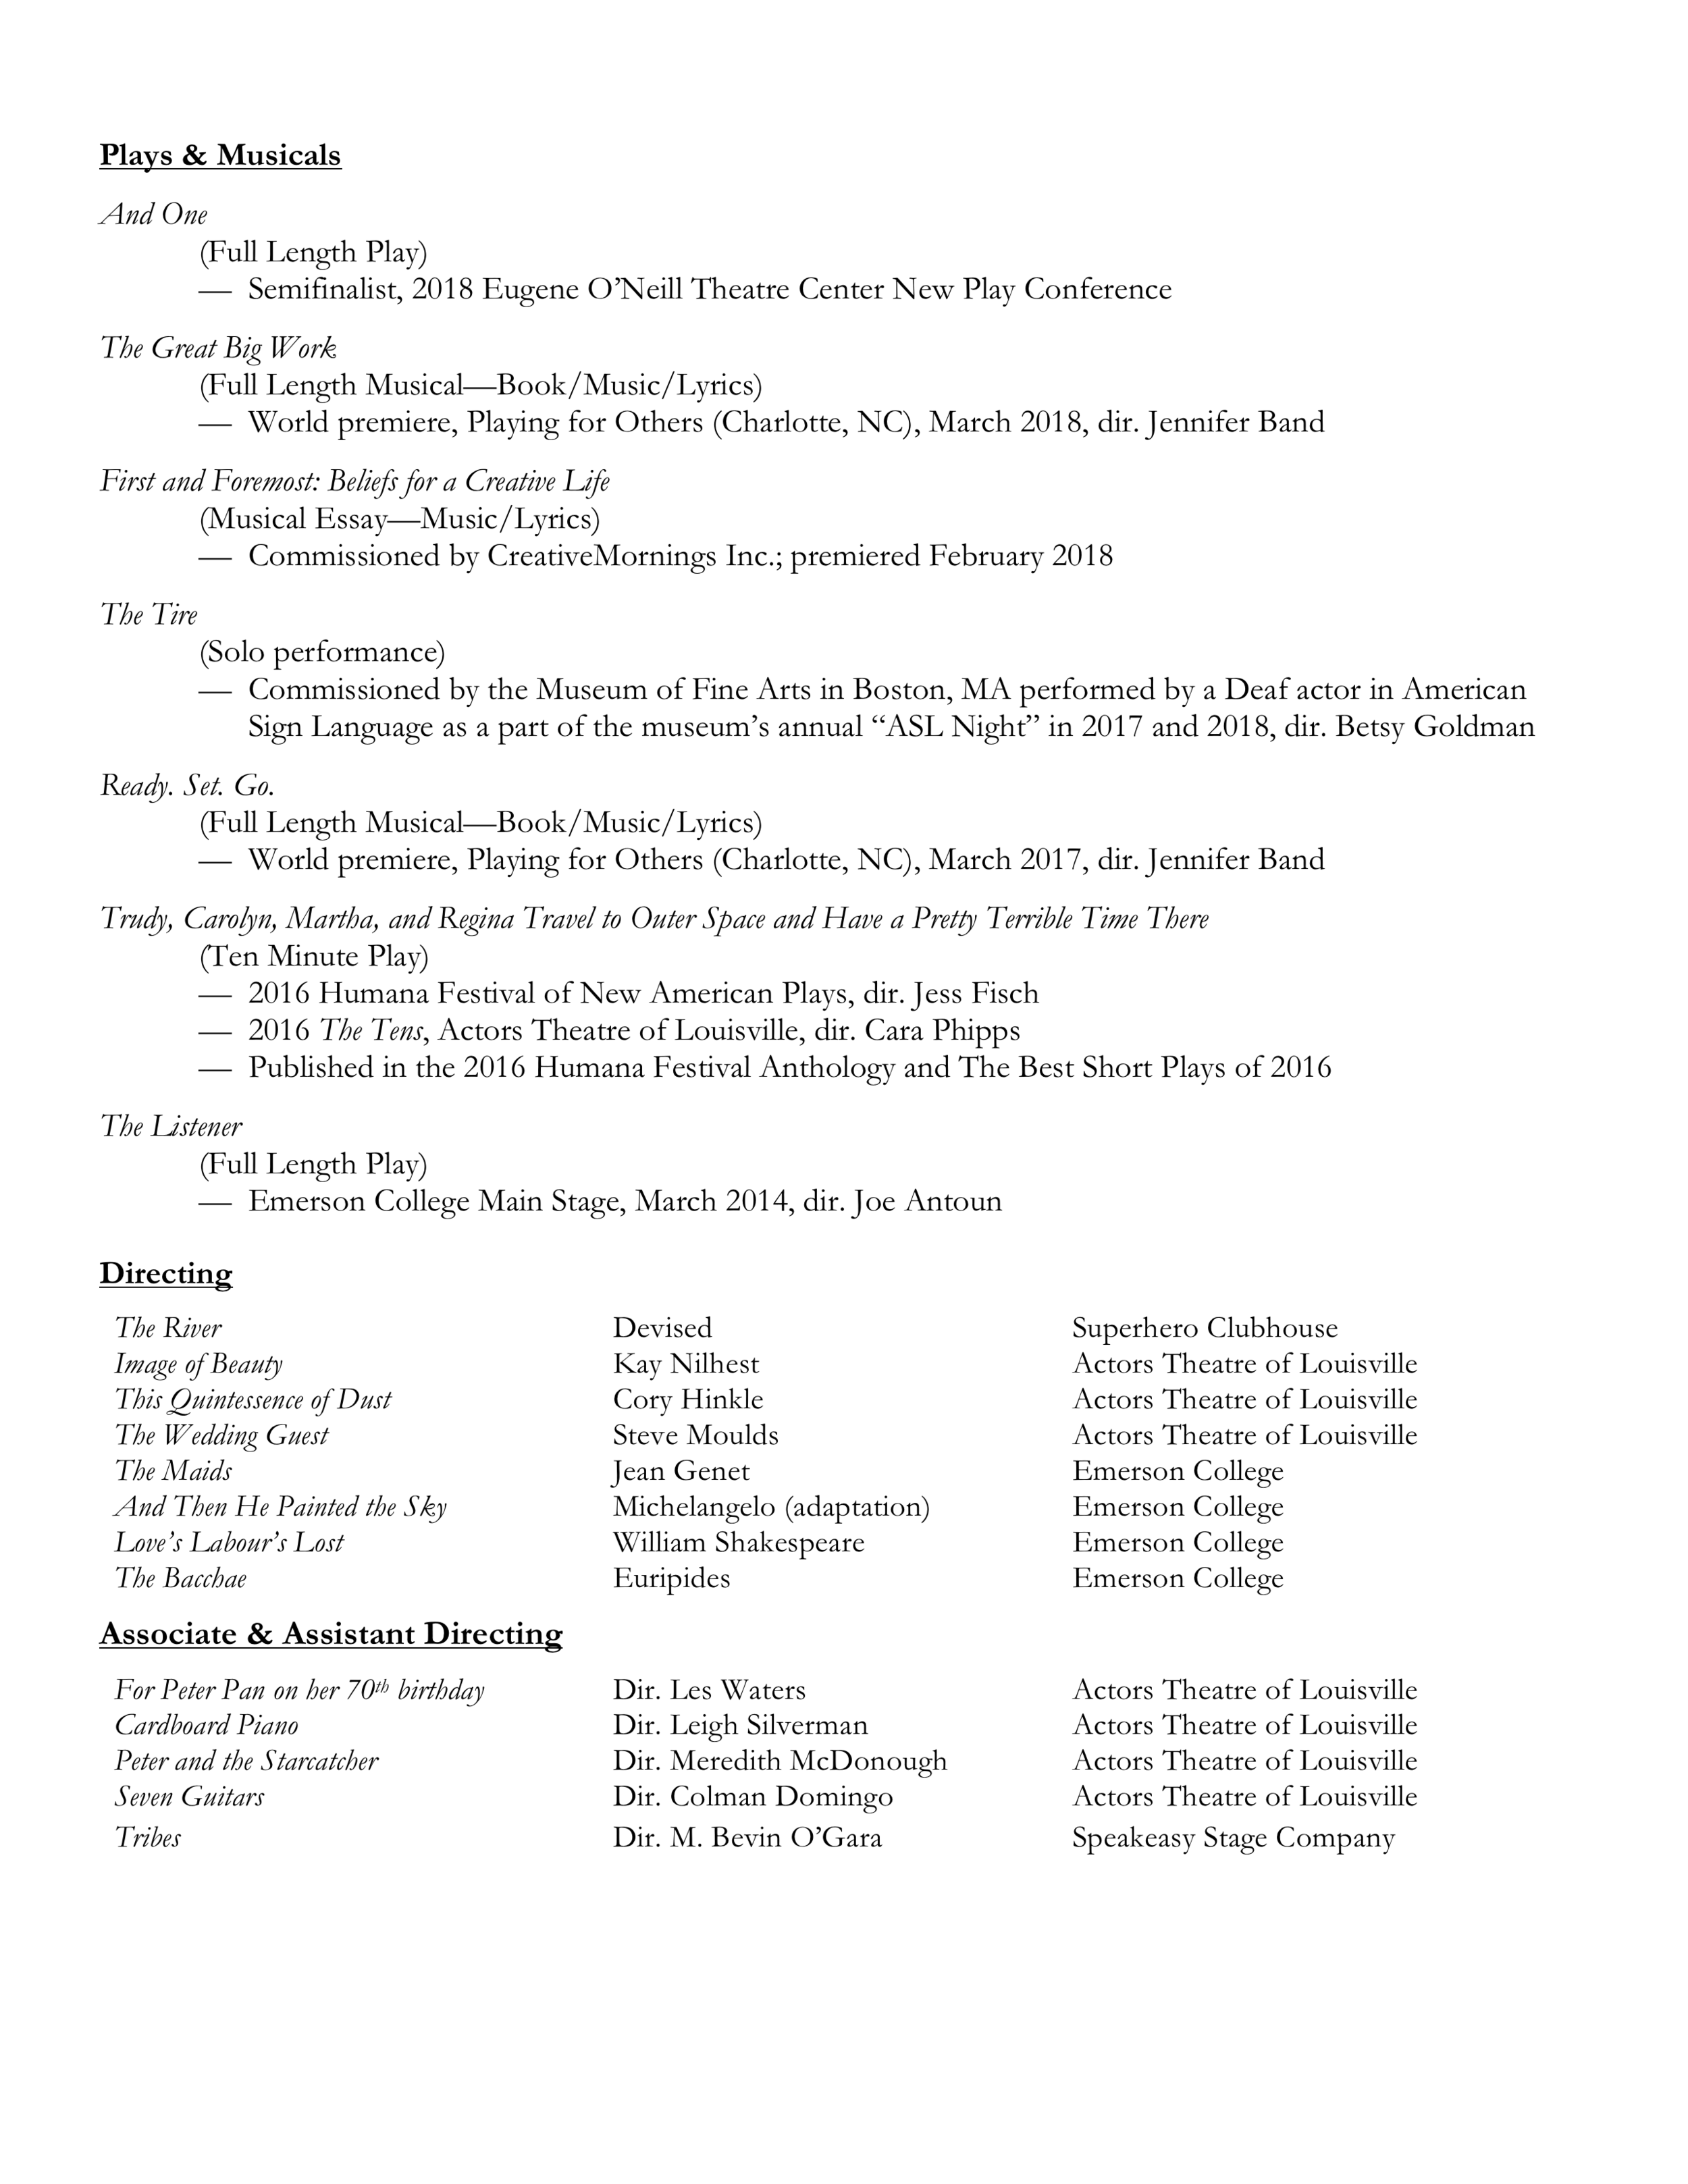 J+Kennedy+Resume+Website+March+2019-2.png